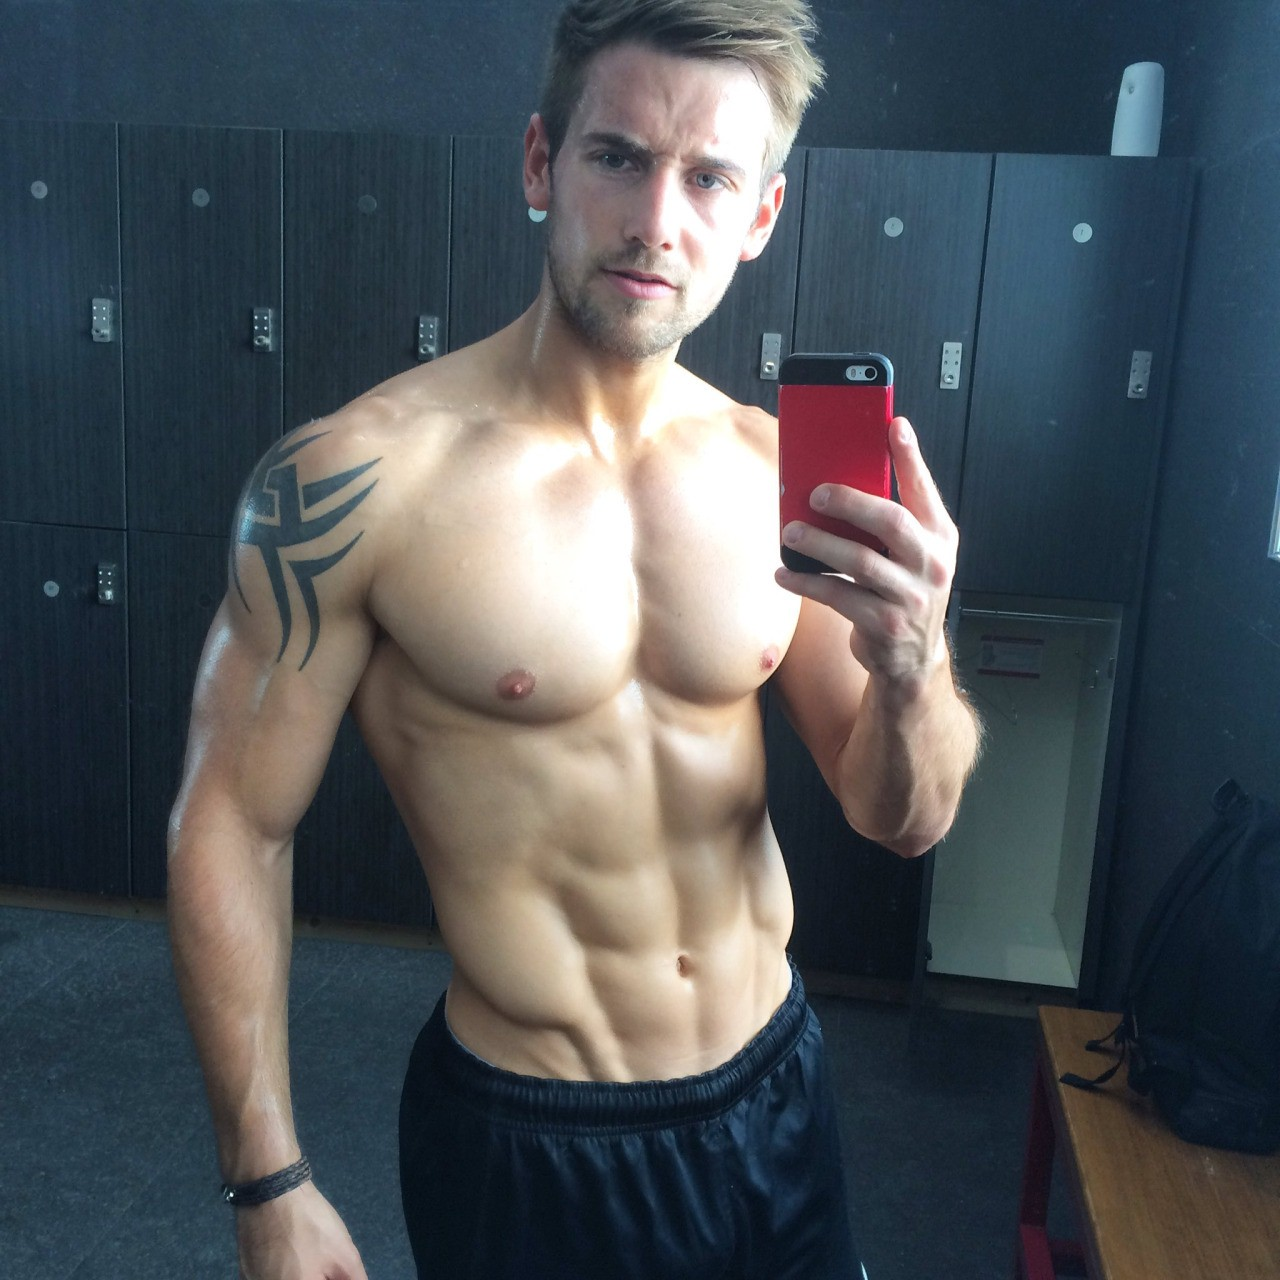 sexy-shirtless-selfie-man